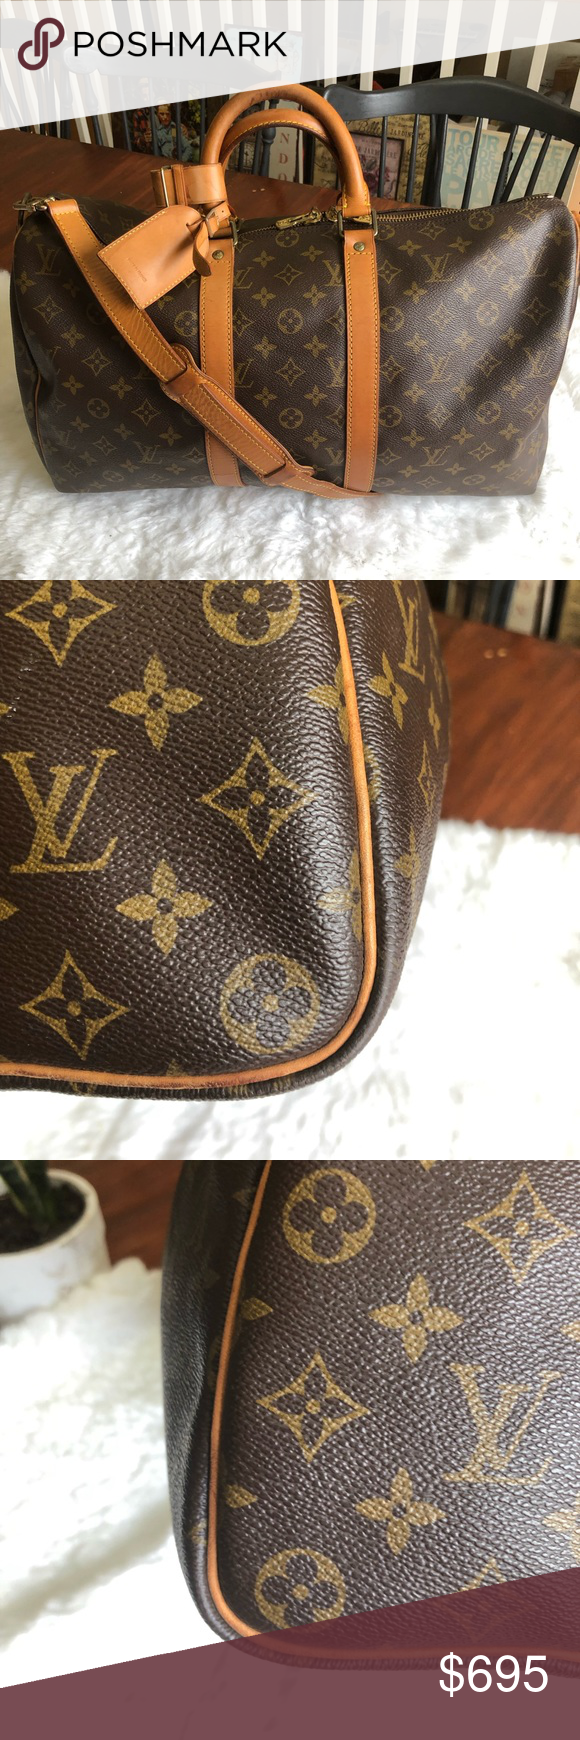 Keepal 45 Bando In Good Preloved Codition Show Sign Of Usage Esp In Vachetta No Cracks Kn Corner Inside Have Few Stain No Smell No Tr Louis Vuitton Louis Vuitton Monogram